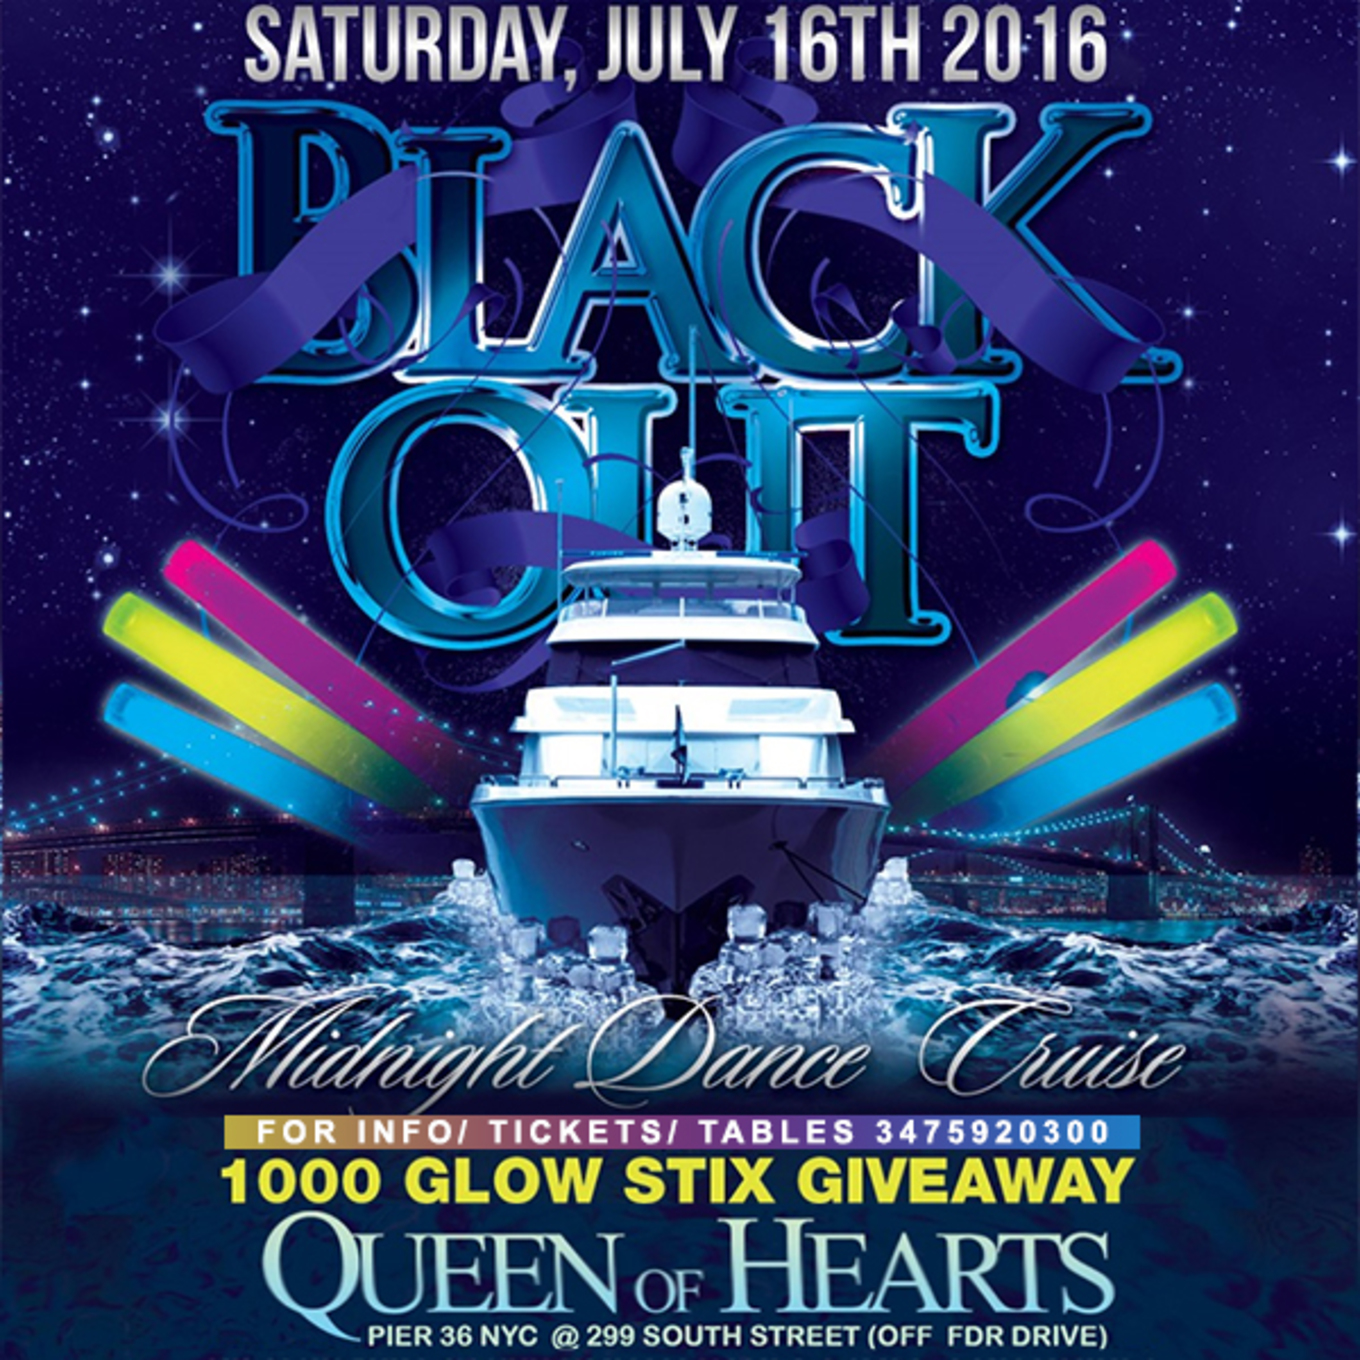 Nyc Boat Party Midnight Glow In The Dark Cruise Queen Of Hearts Pier